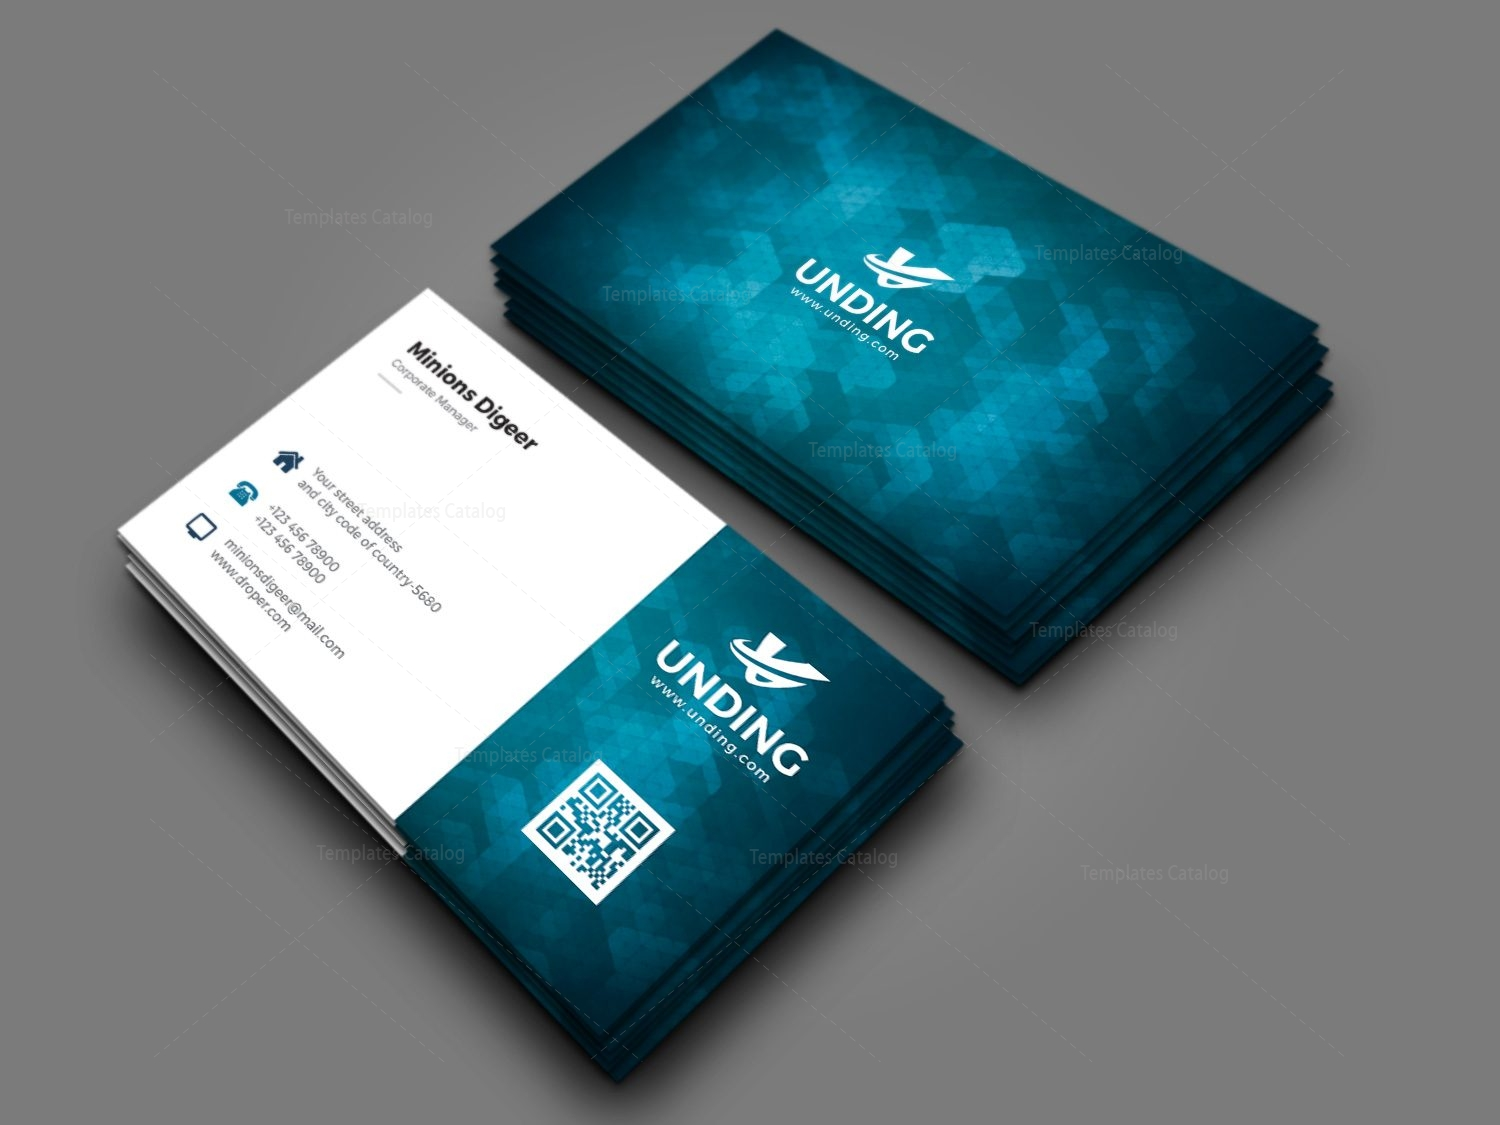 Aurora professional corporate business card template 000927 aurora professional corporate business card template cheaphphosting